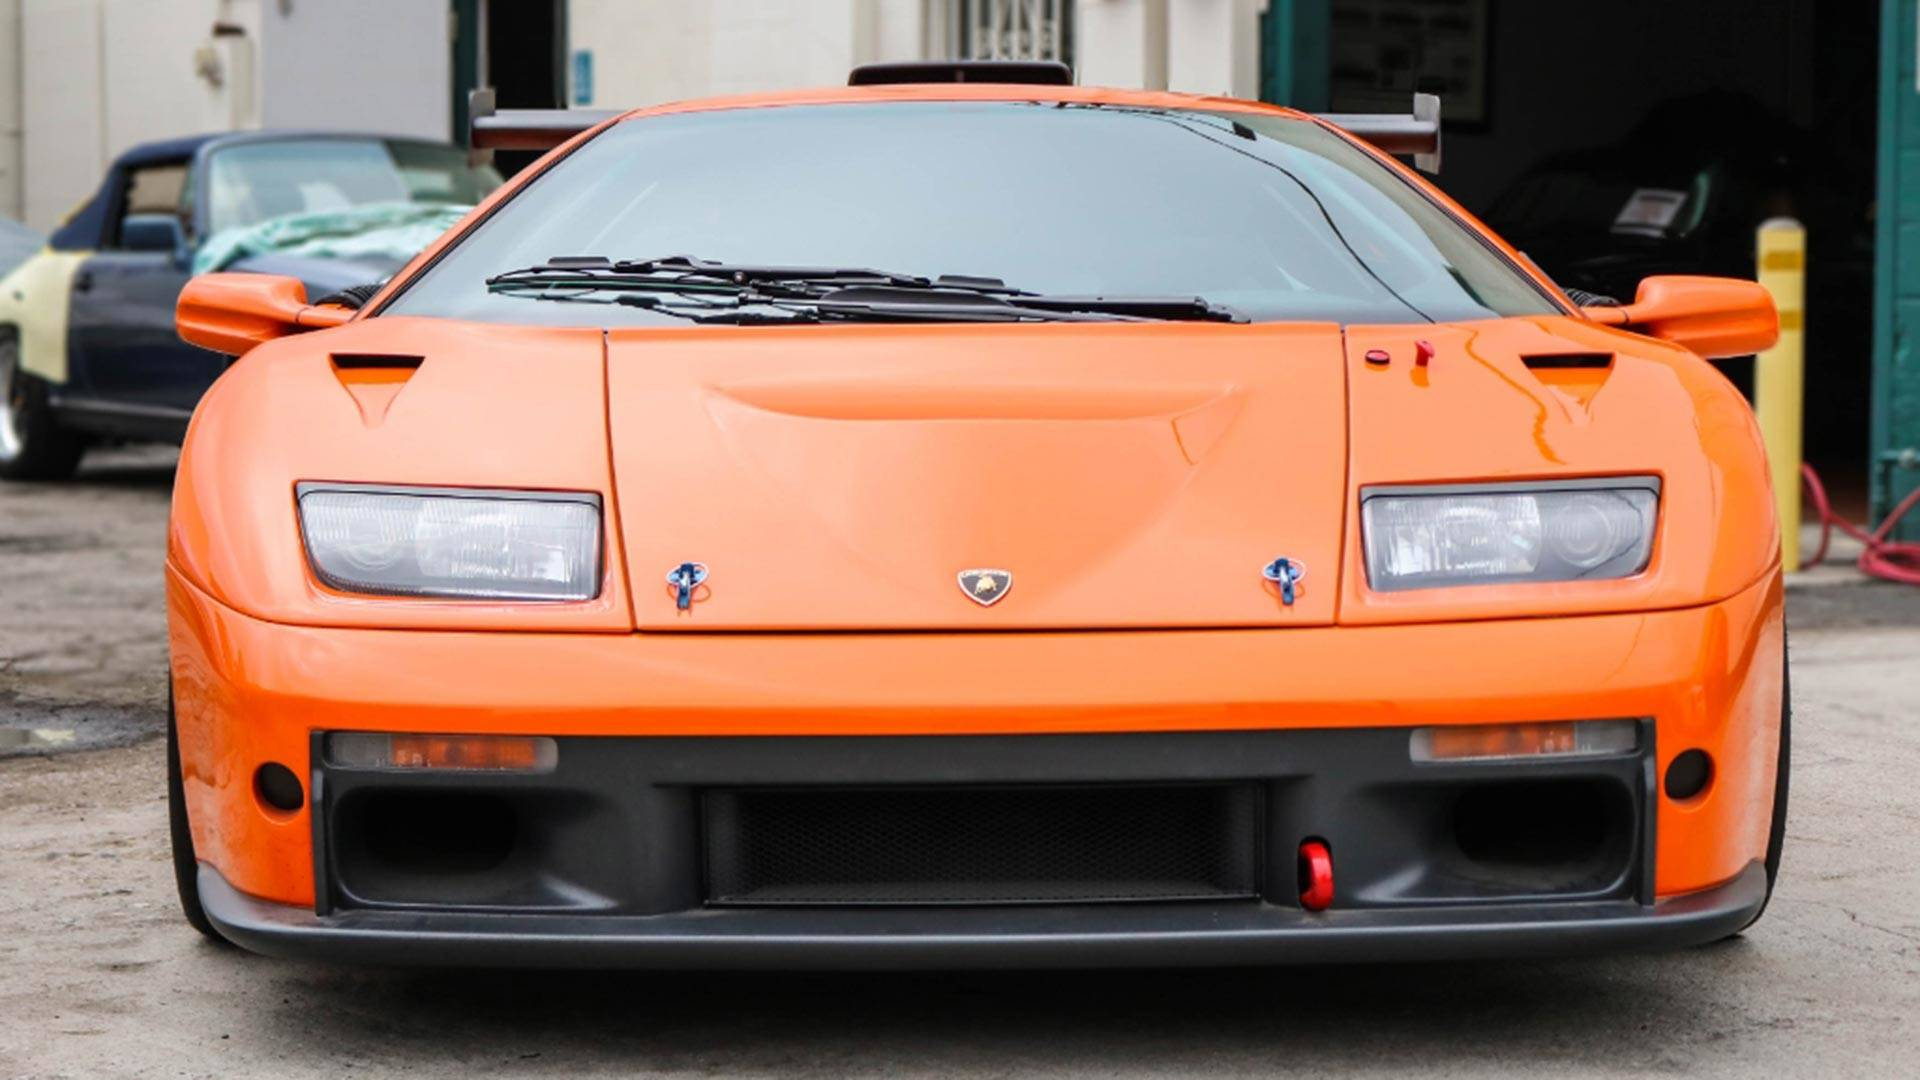 Index Of Wp Content Gallery 2017 Lamborghini Diablo Gtr Orange For